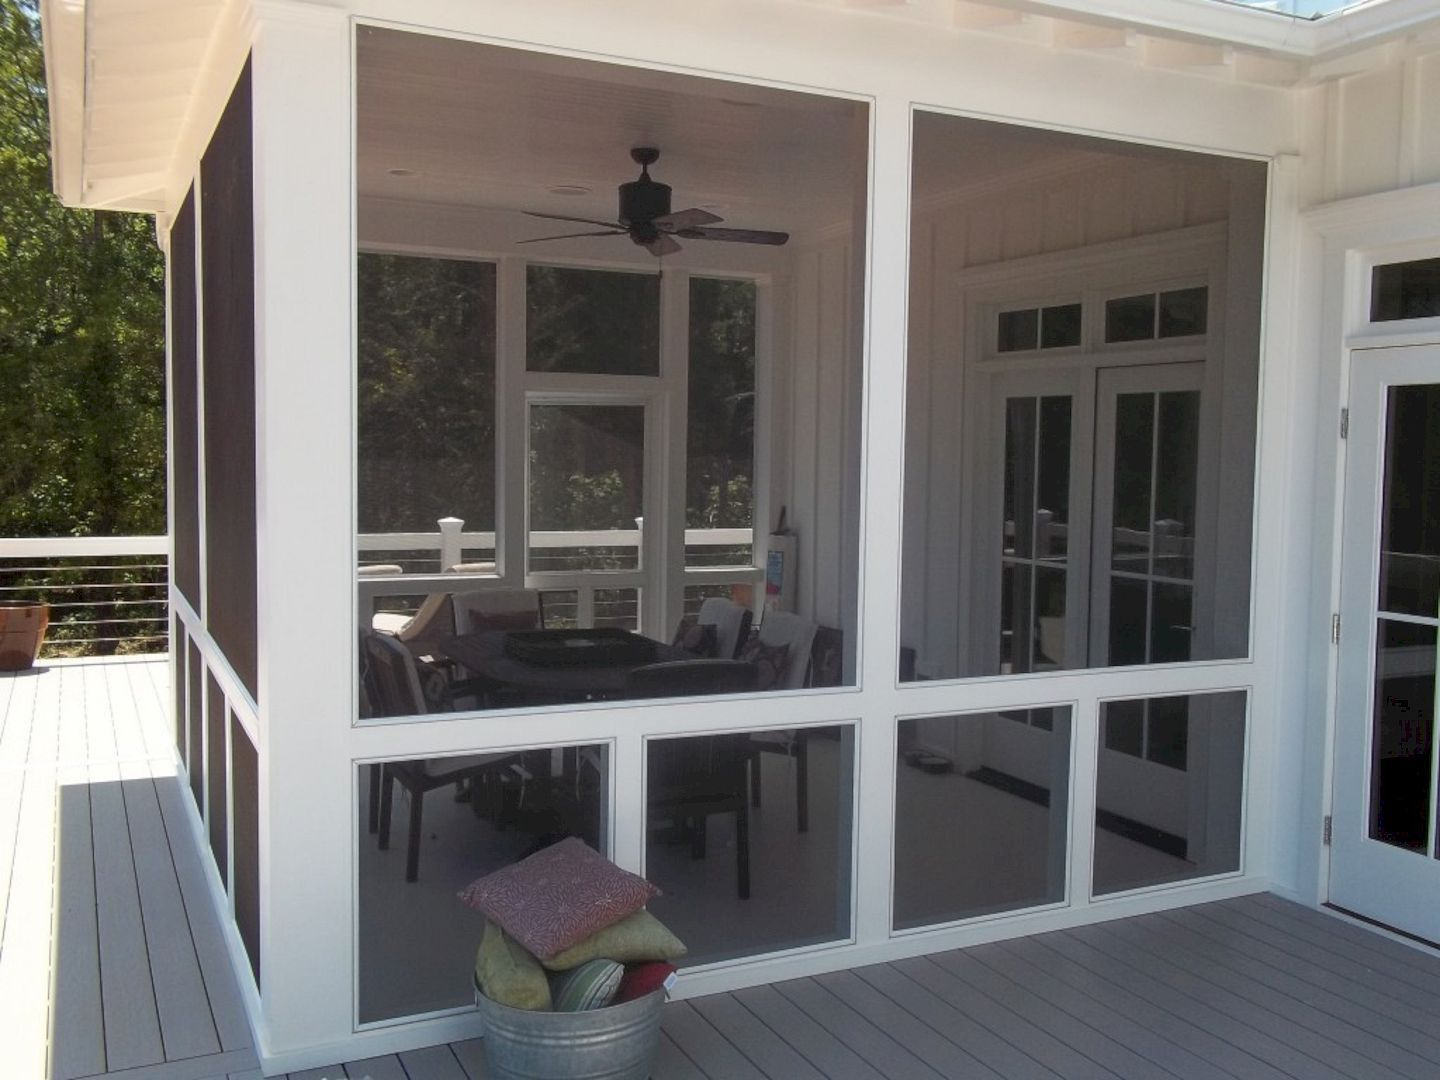 Pin By Steven Stroud On Balcony Porches Screened Porch Designs Porch Design Building A Porch